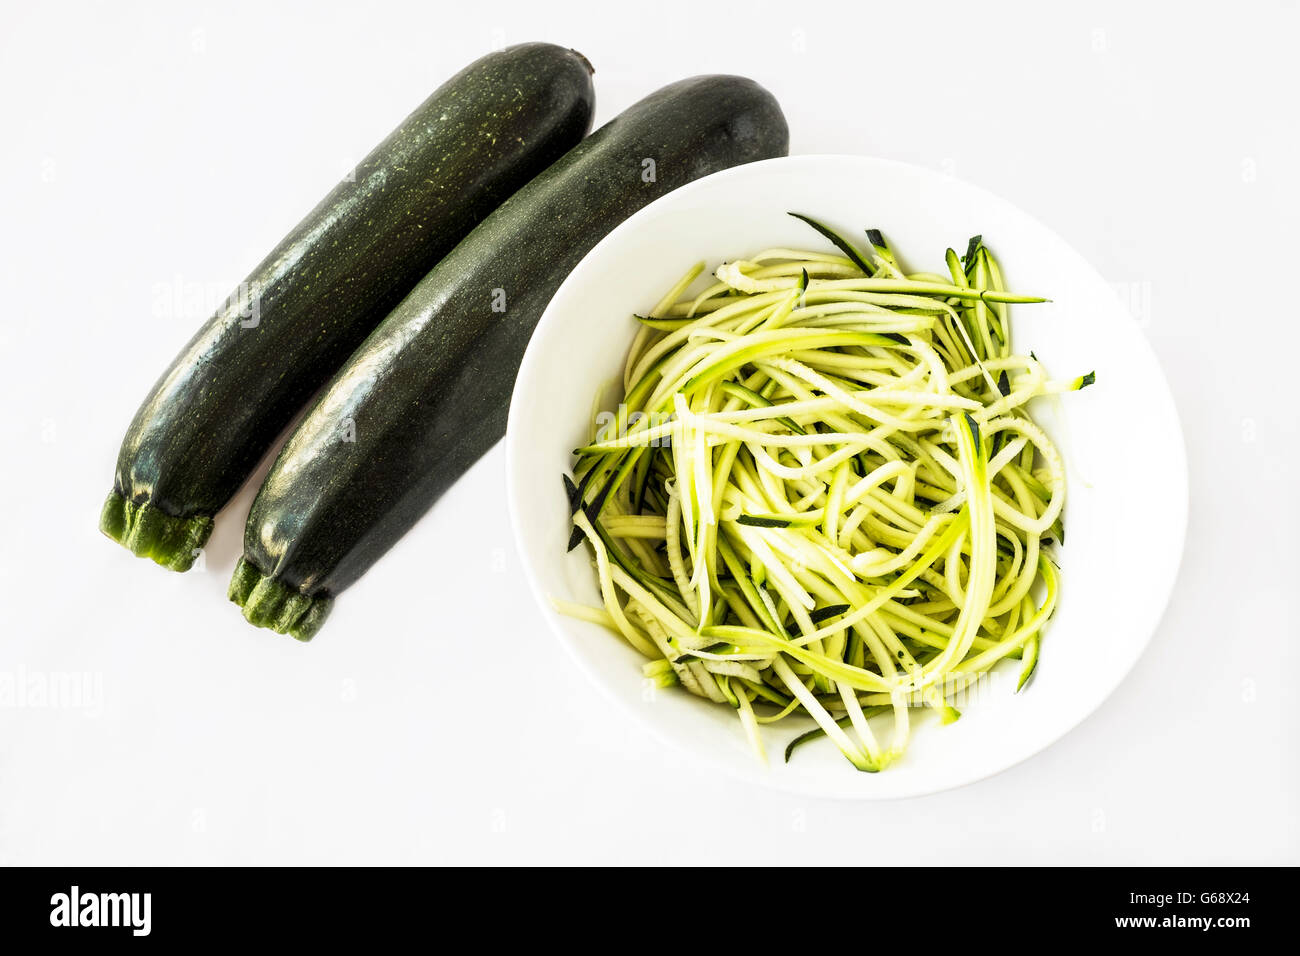 Two zucchini or courgettes with some spiralized for pasta substitute in a white bowl on white background Stock Photo